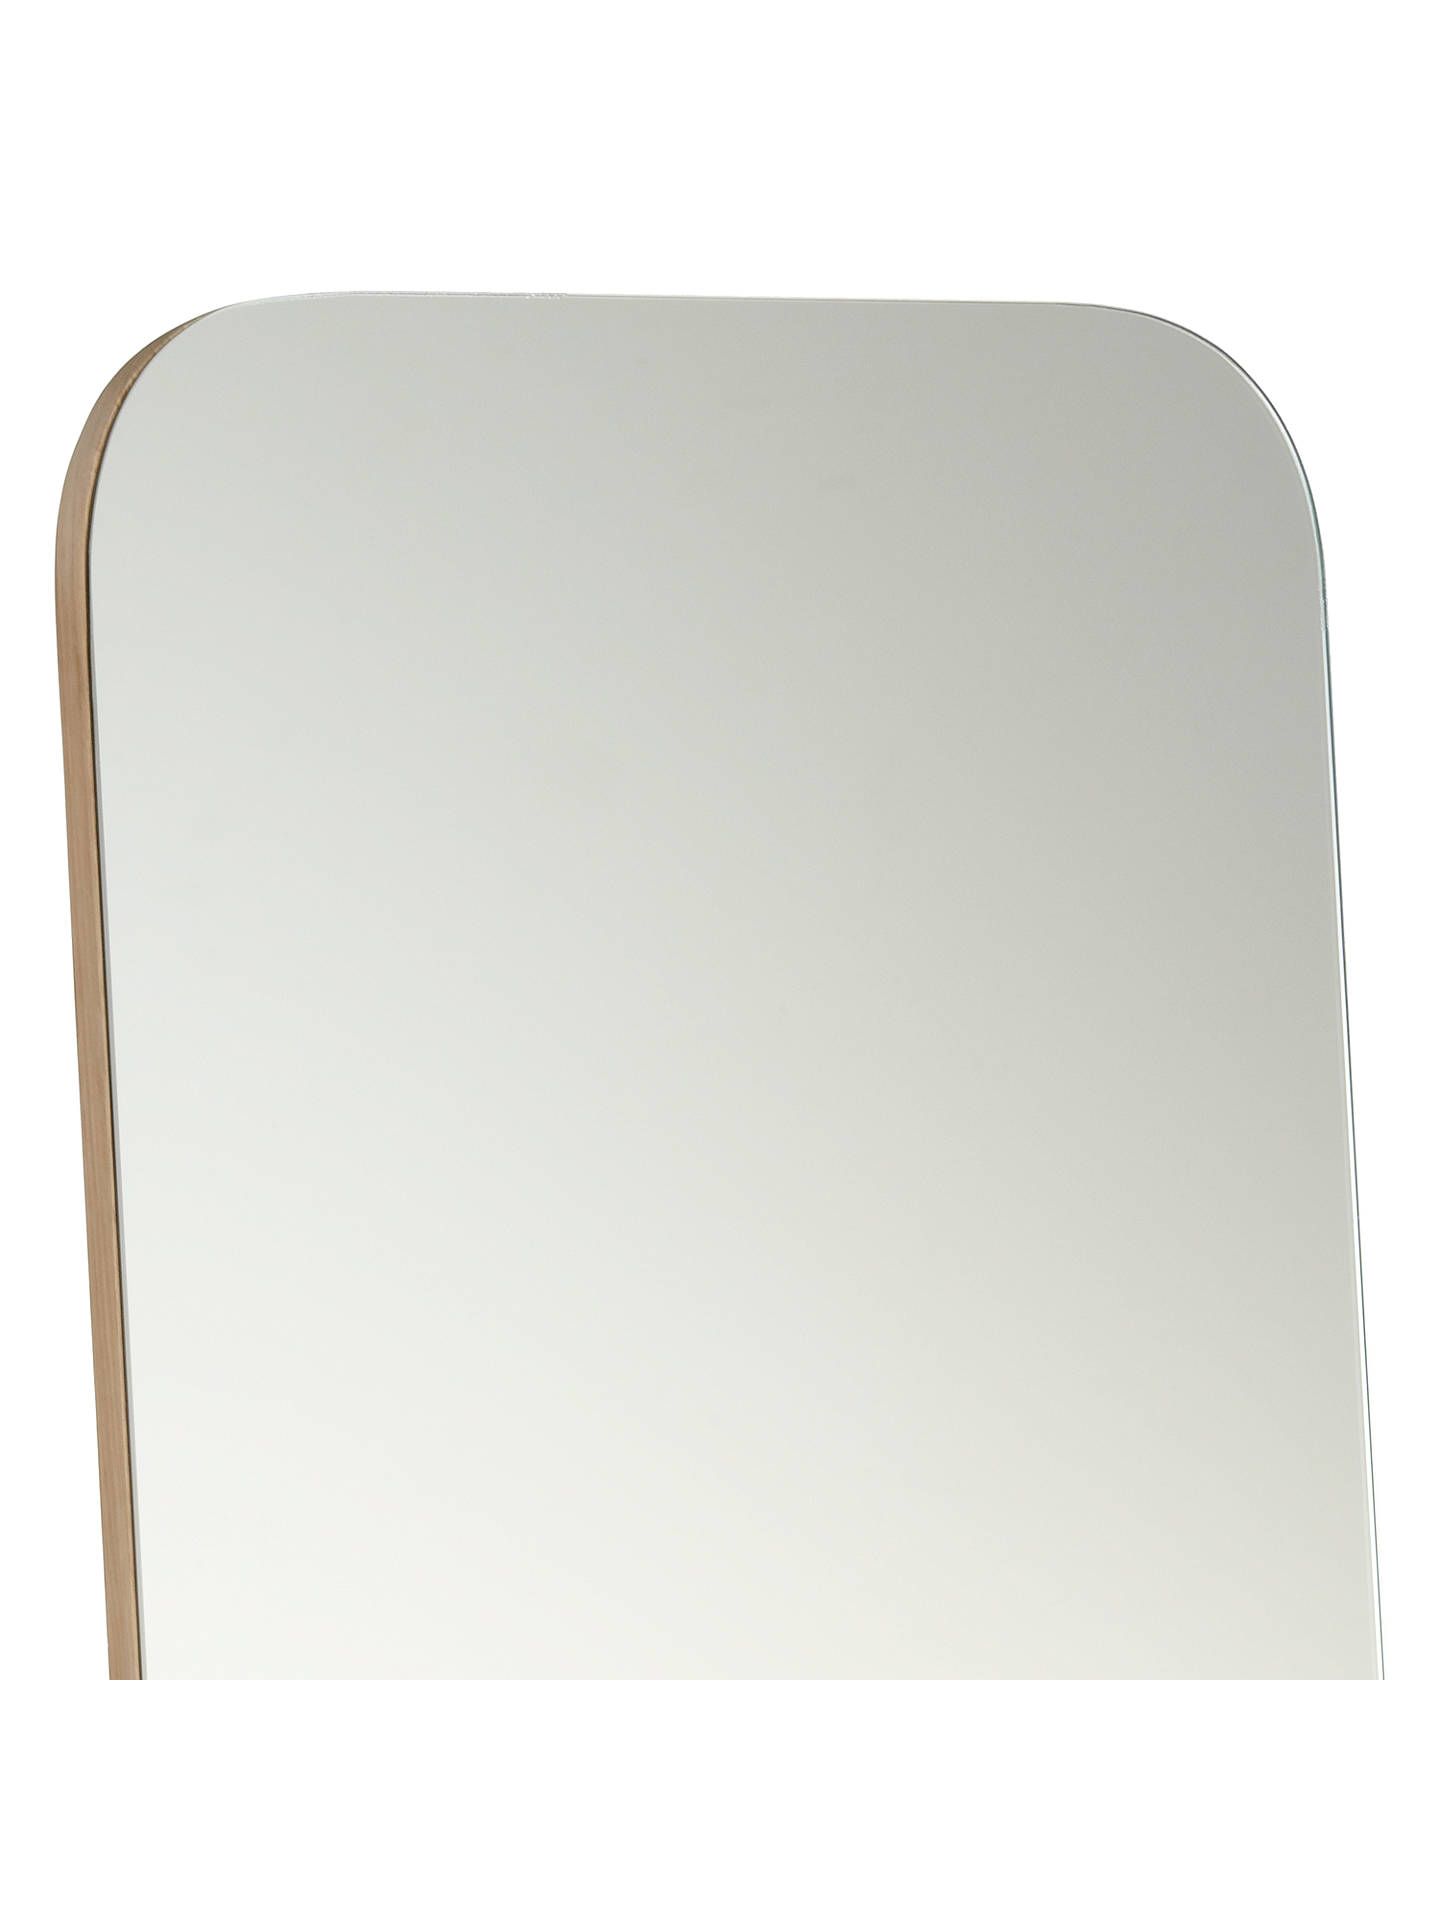 BuyJohn Lewis Hatten Freestanding Mirror, Oak Online at johnlewis.com